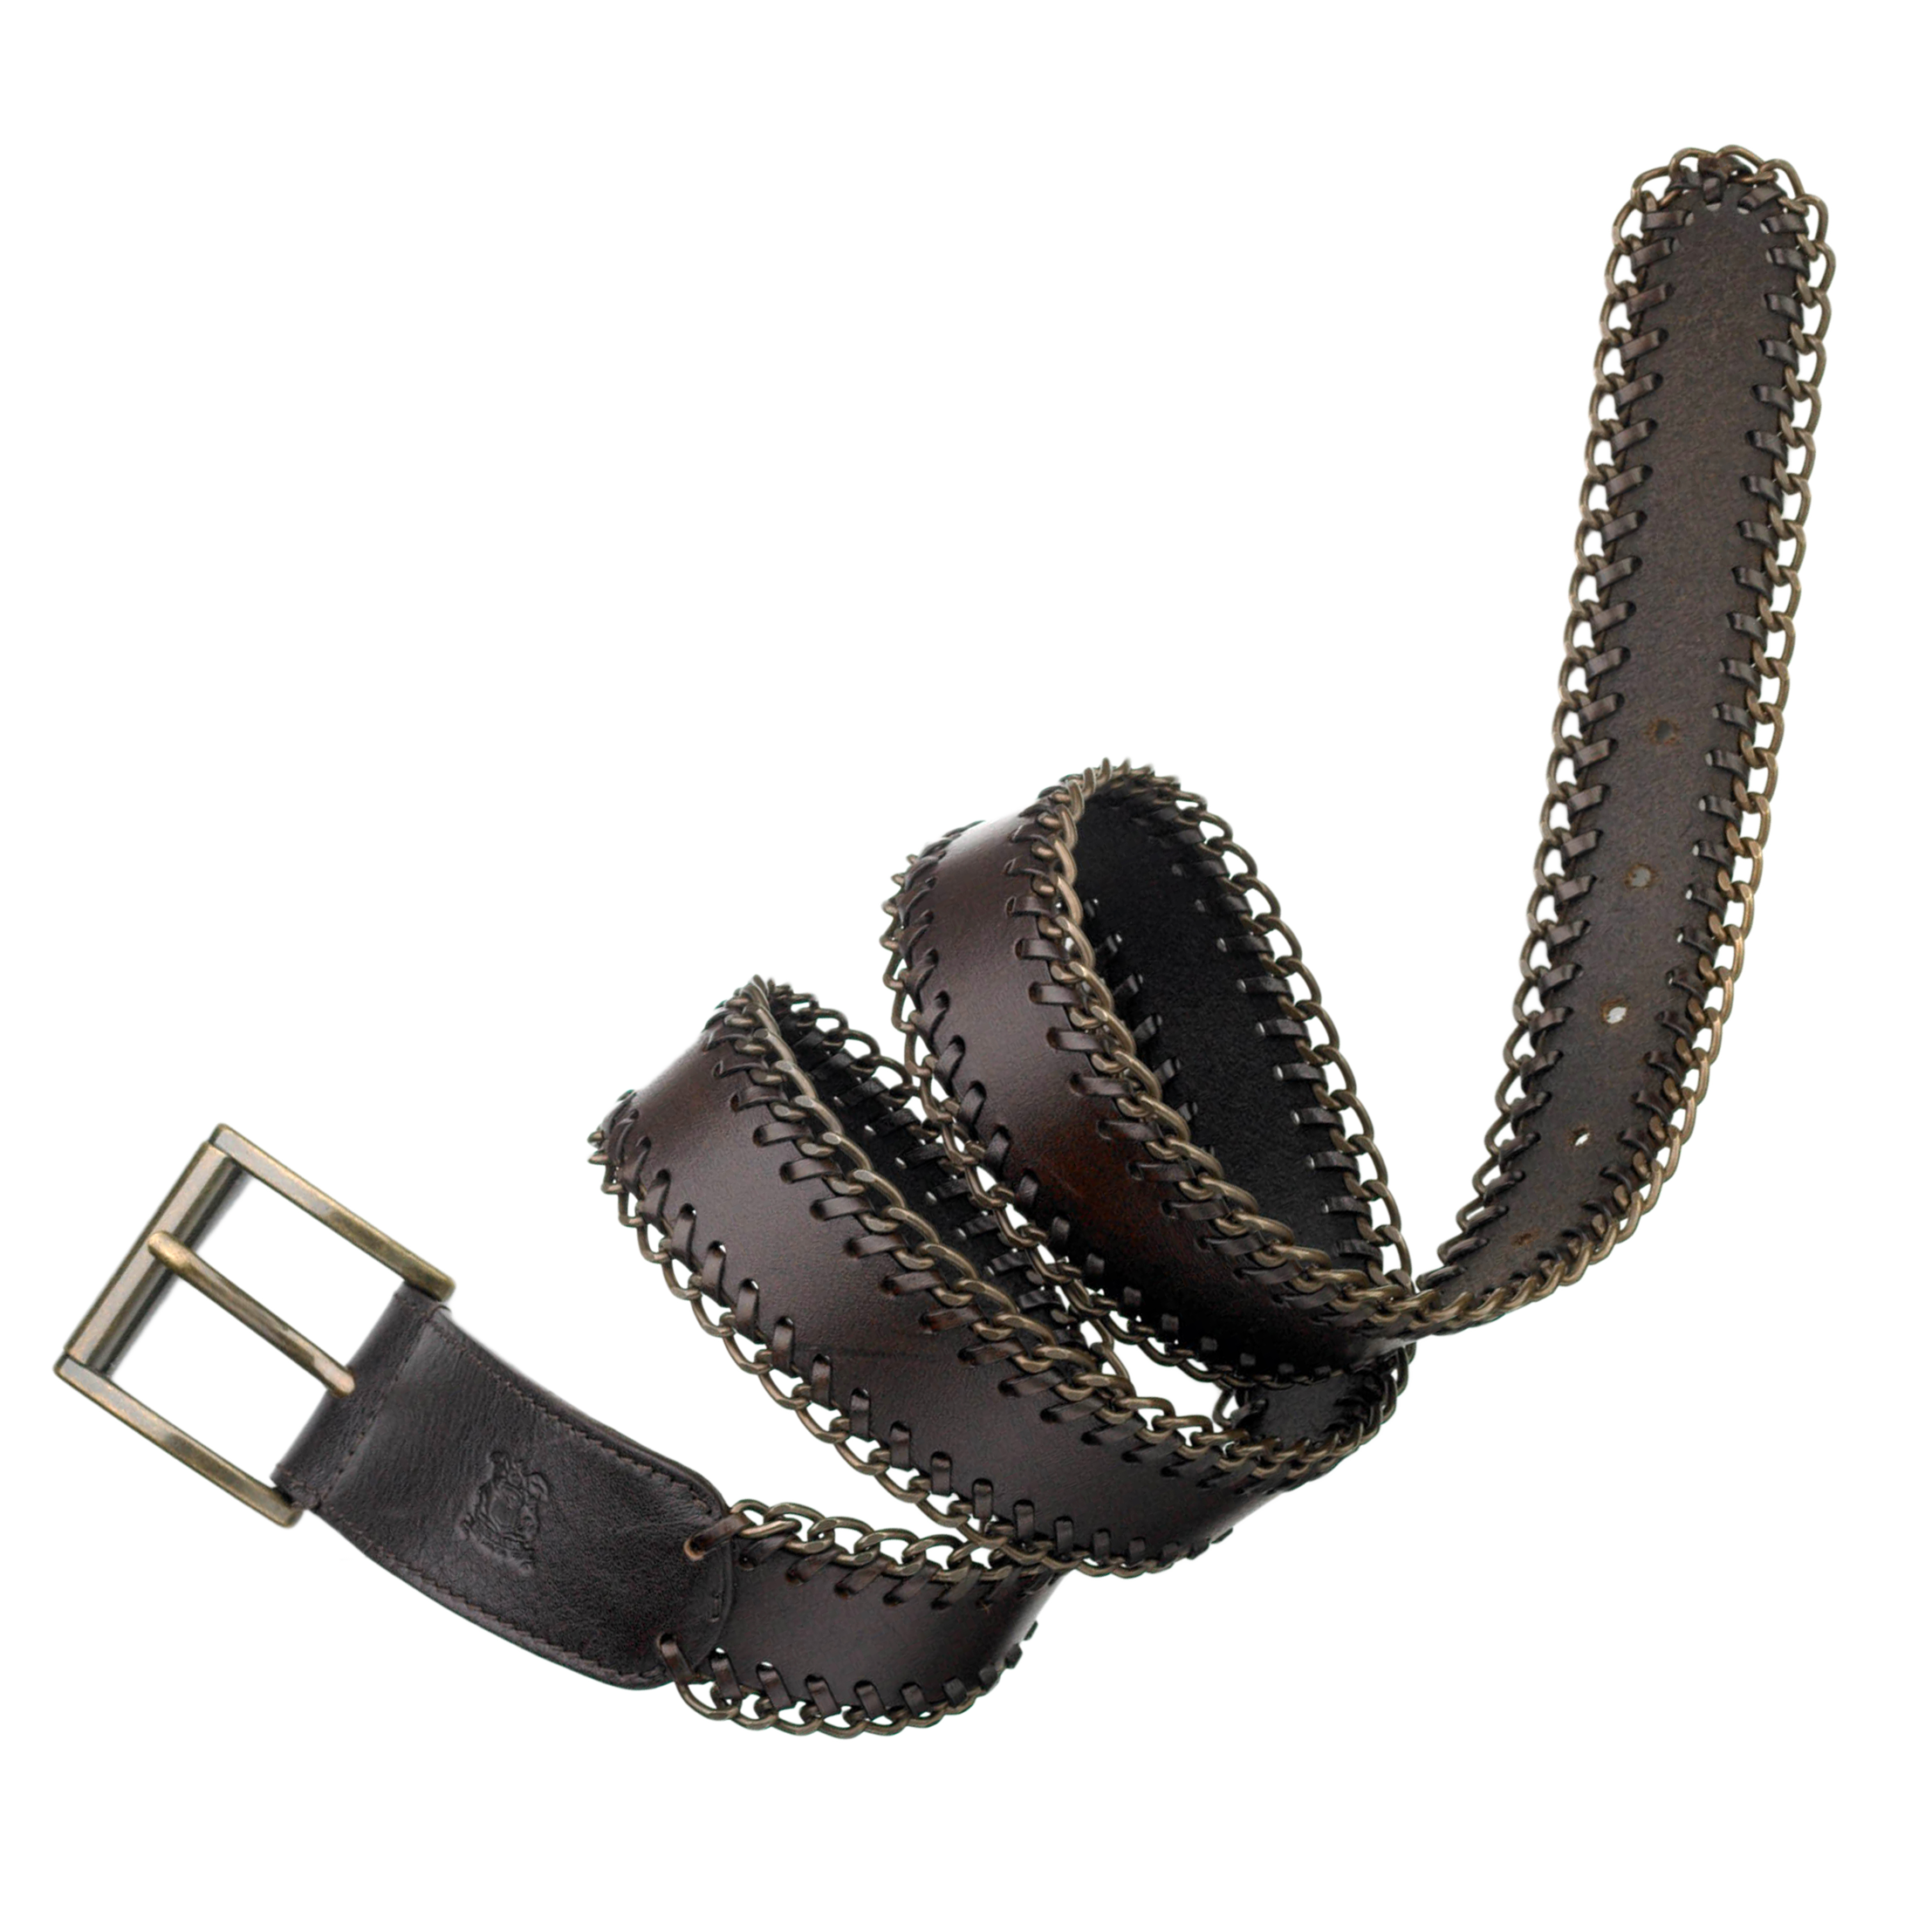 Trussardi 1911 leather belt | How To Spend It